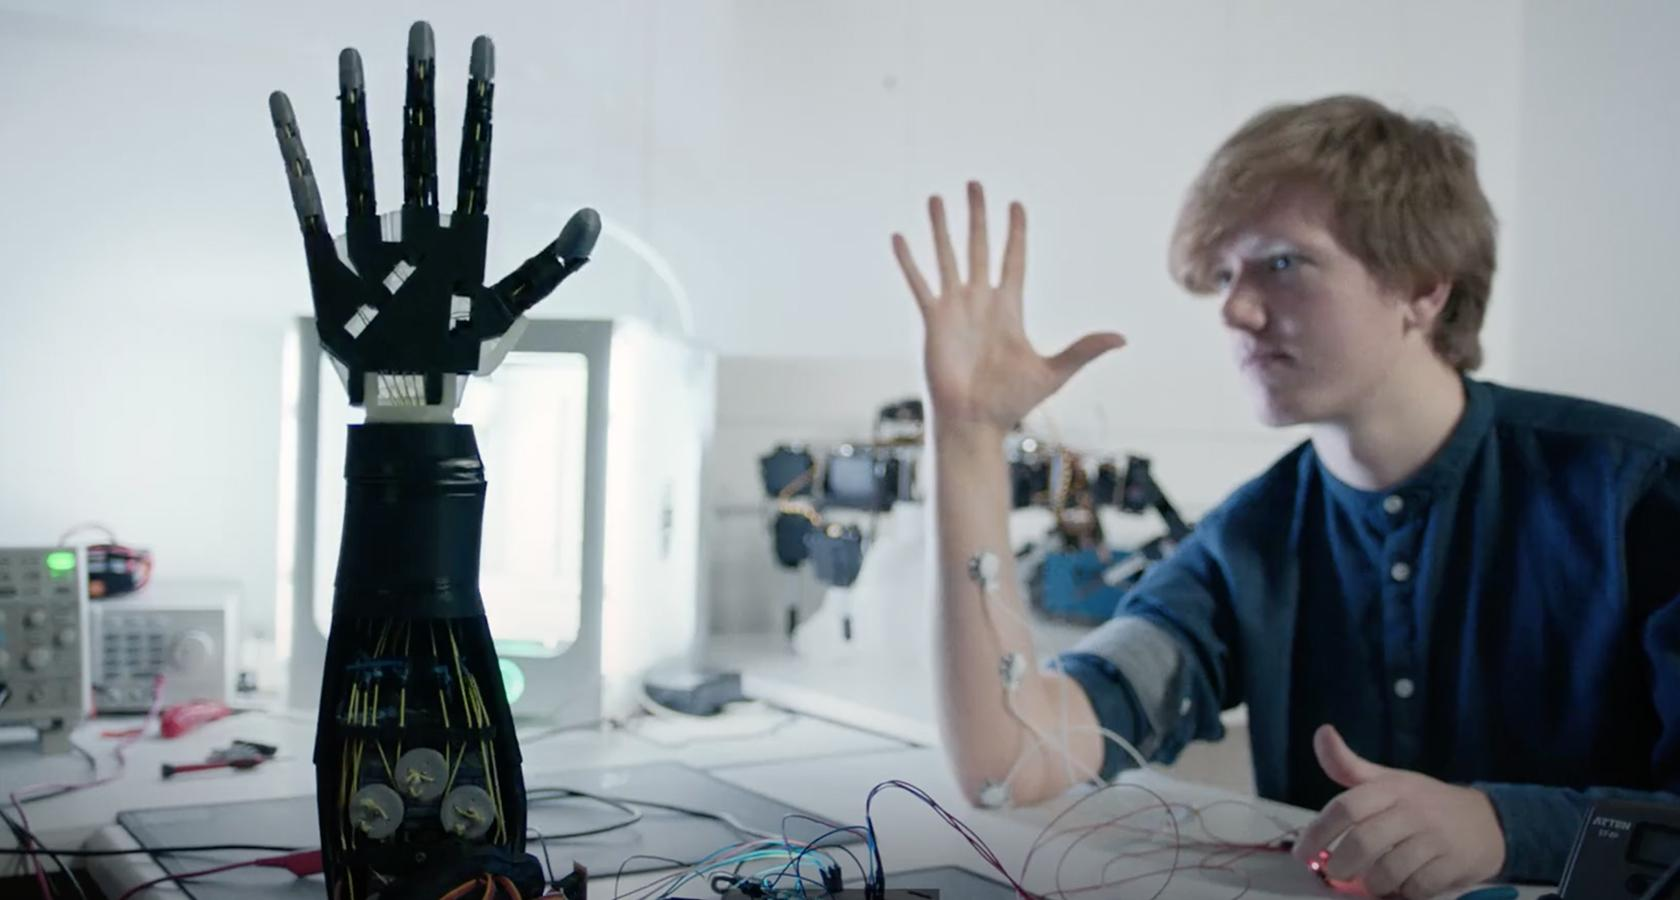 UX education is taken to another level with robotics and design at the RCA.